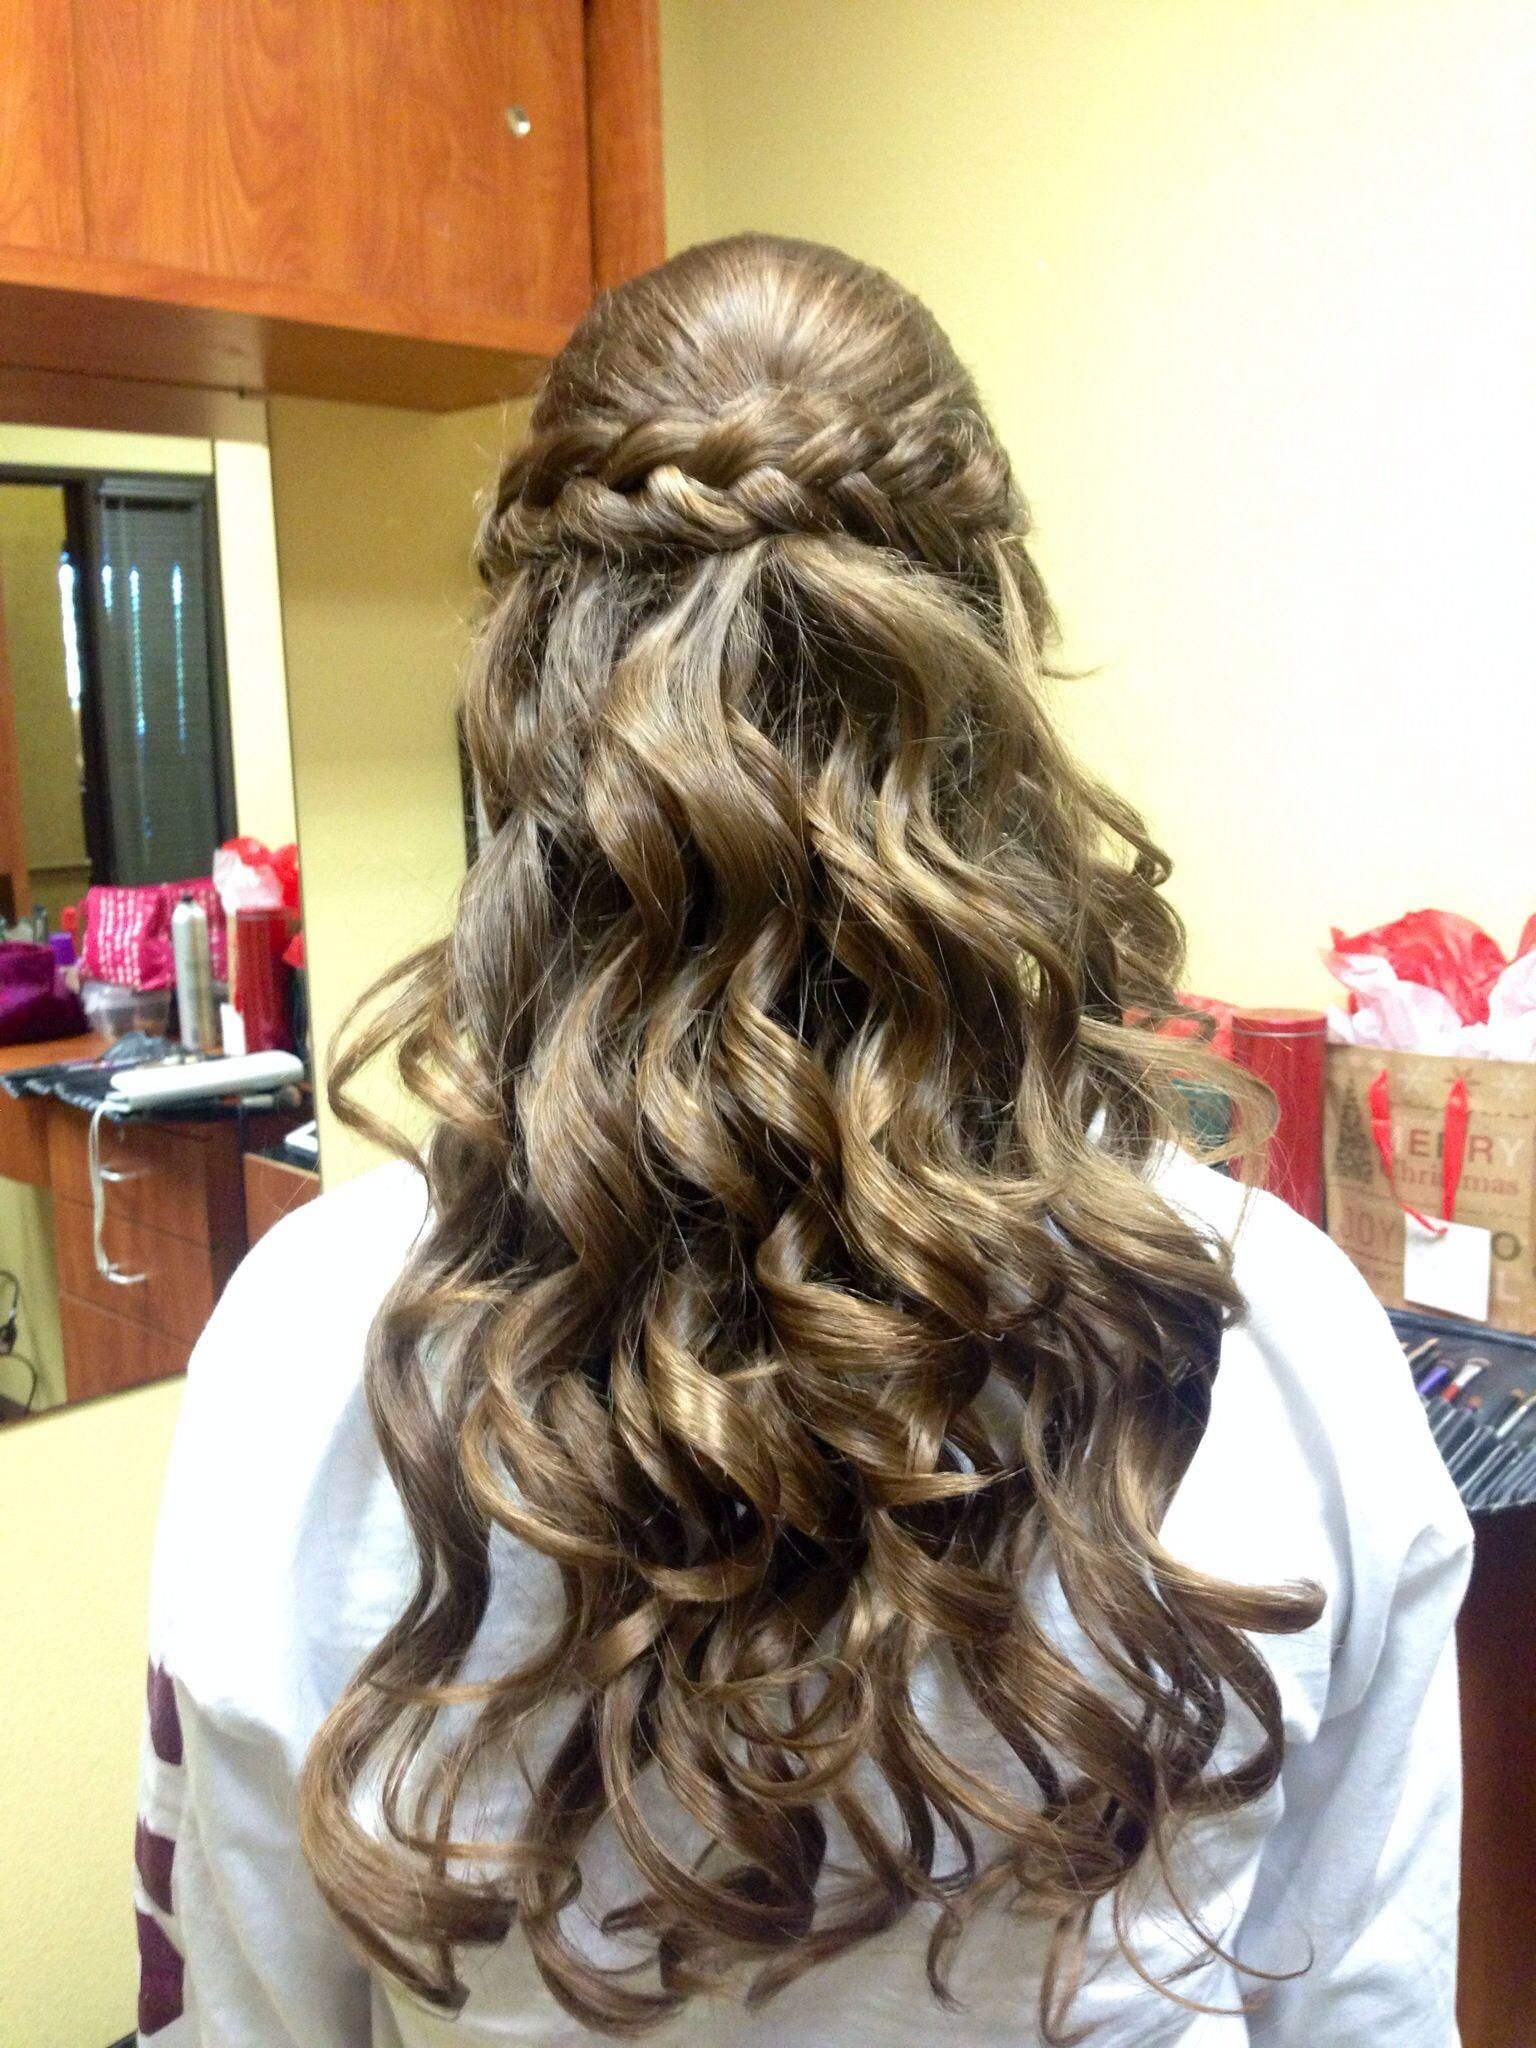 hair styles for school | cute hairstyles | hairstyles for